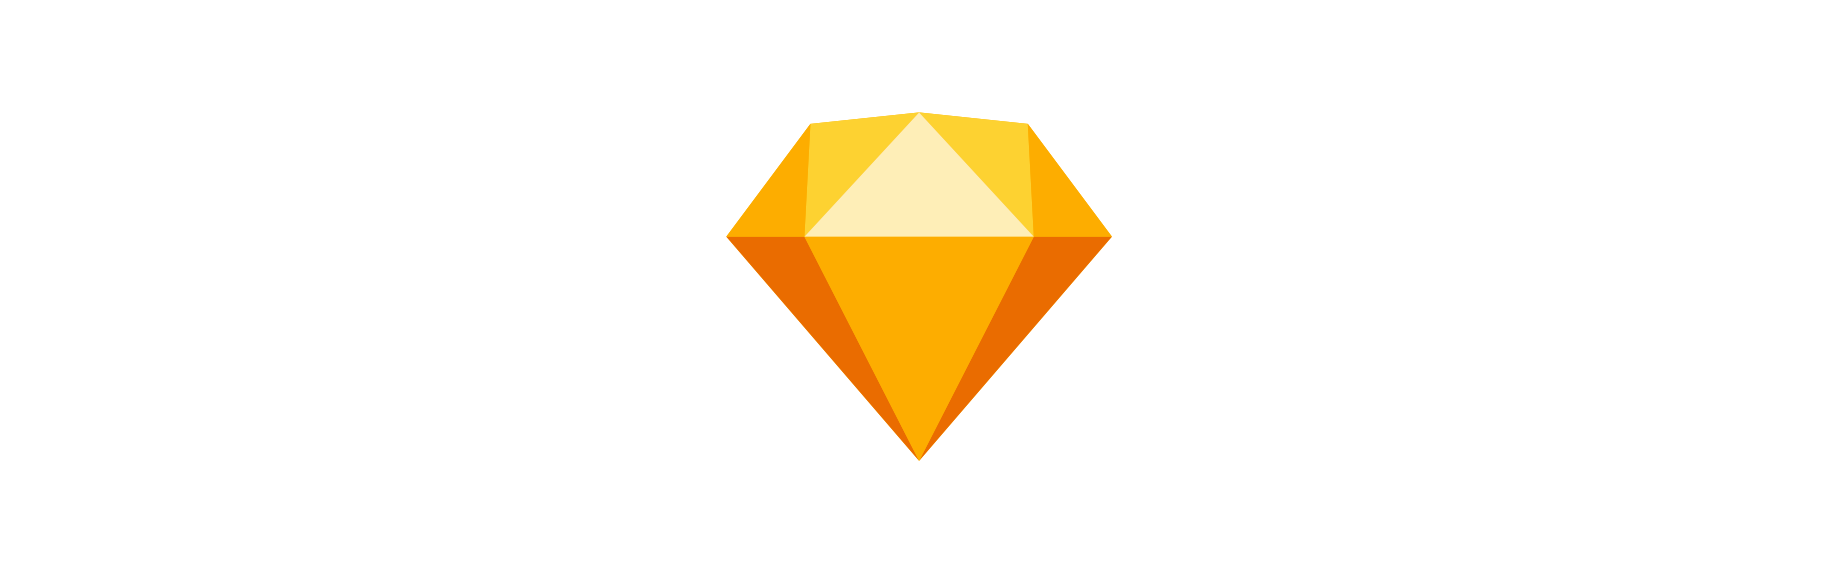 sketch icon small.png